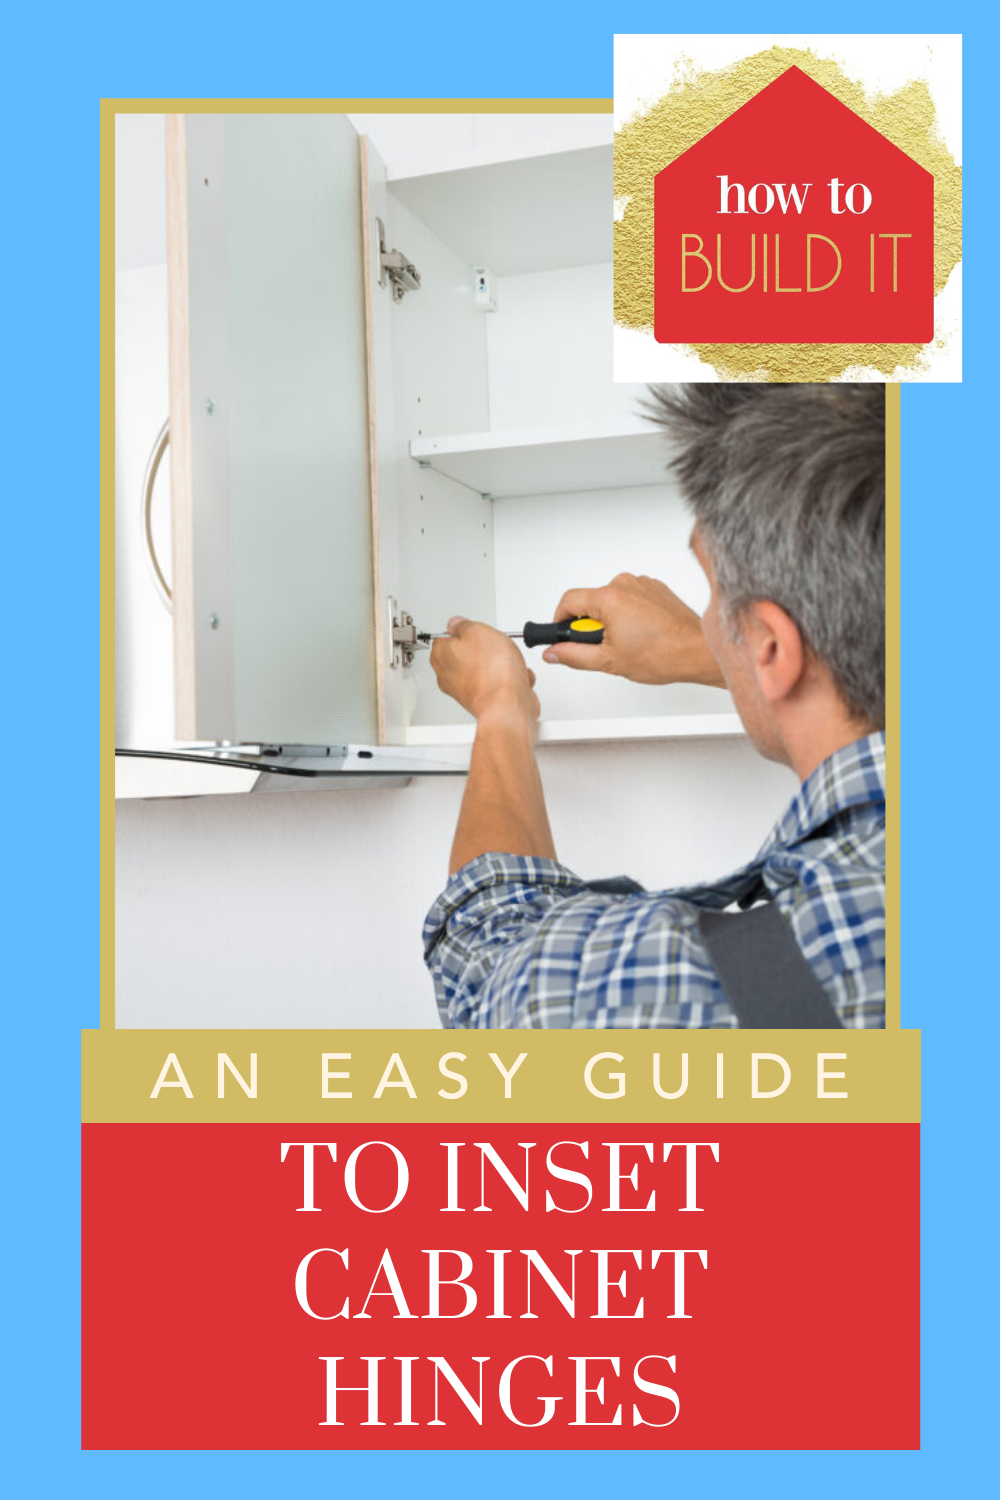 Howtobuildit.org is the ultimate resource for home improvement and DIY projects! Give your kitchen a quick and subtle upgrade! Browse the best options for inset cabinet hinges now!